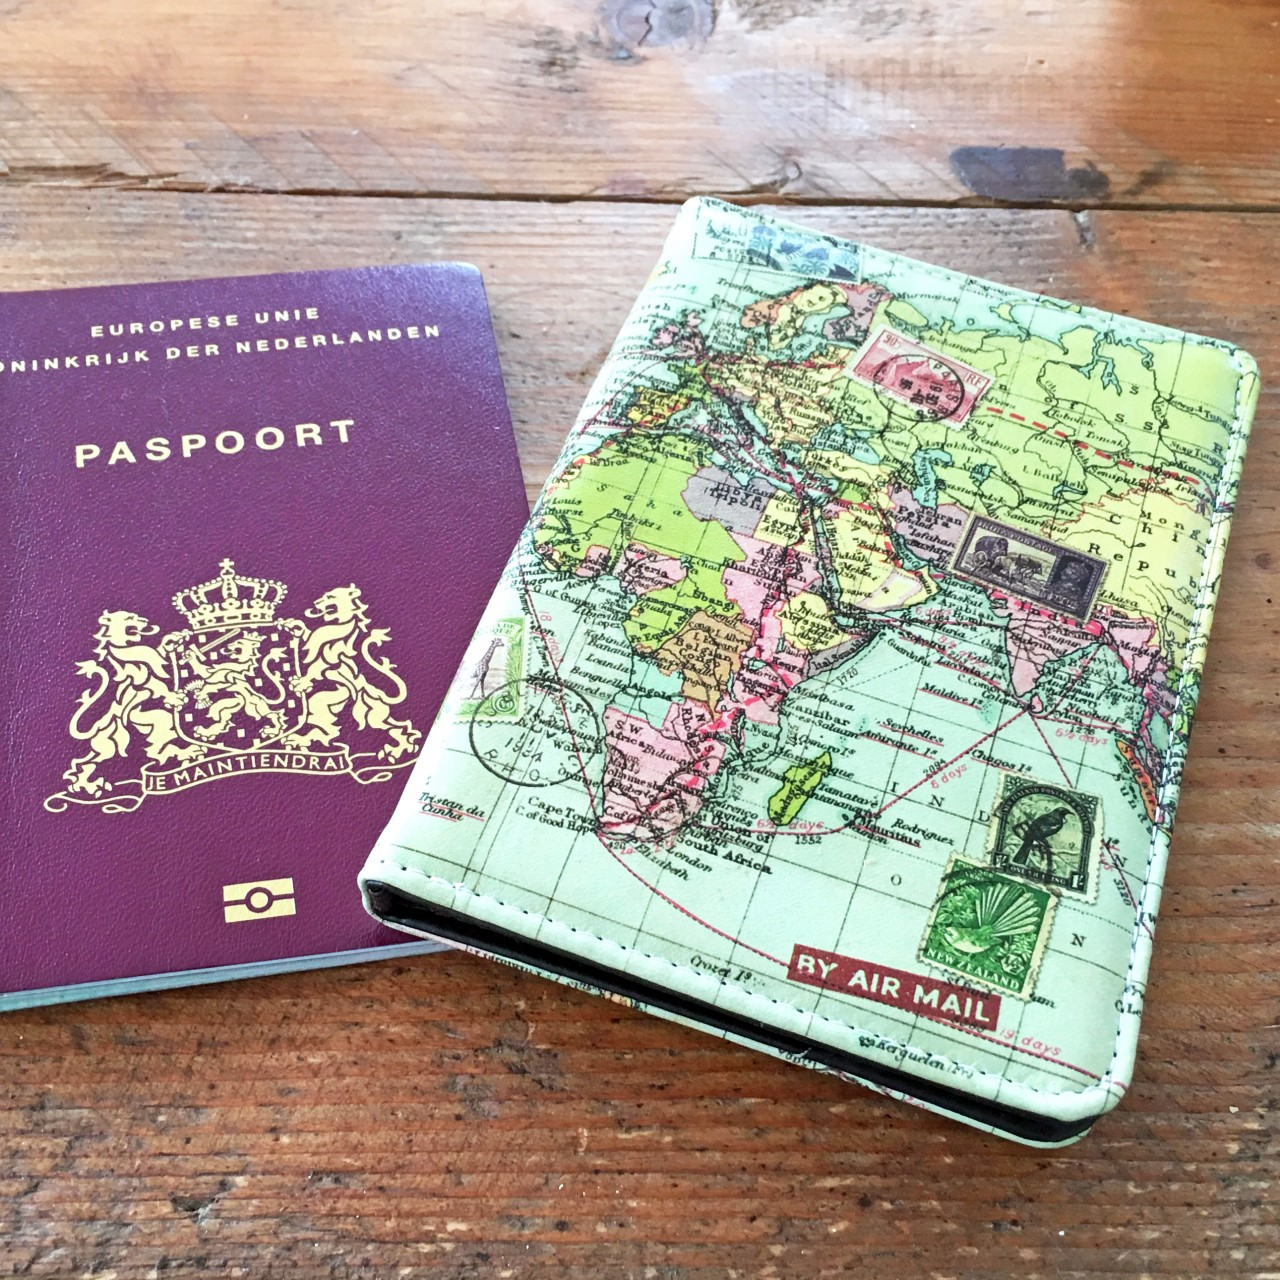 Traveling dutchies travel blog webshop passport case world map gumiabroncs Choice Image